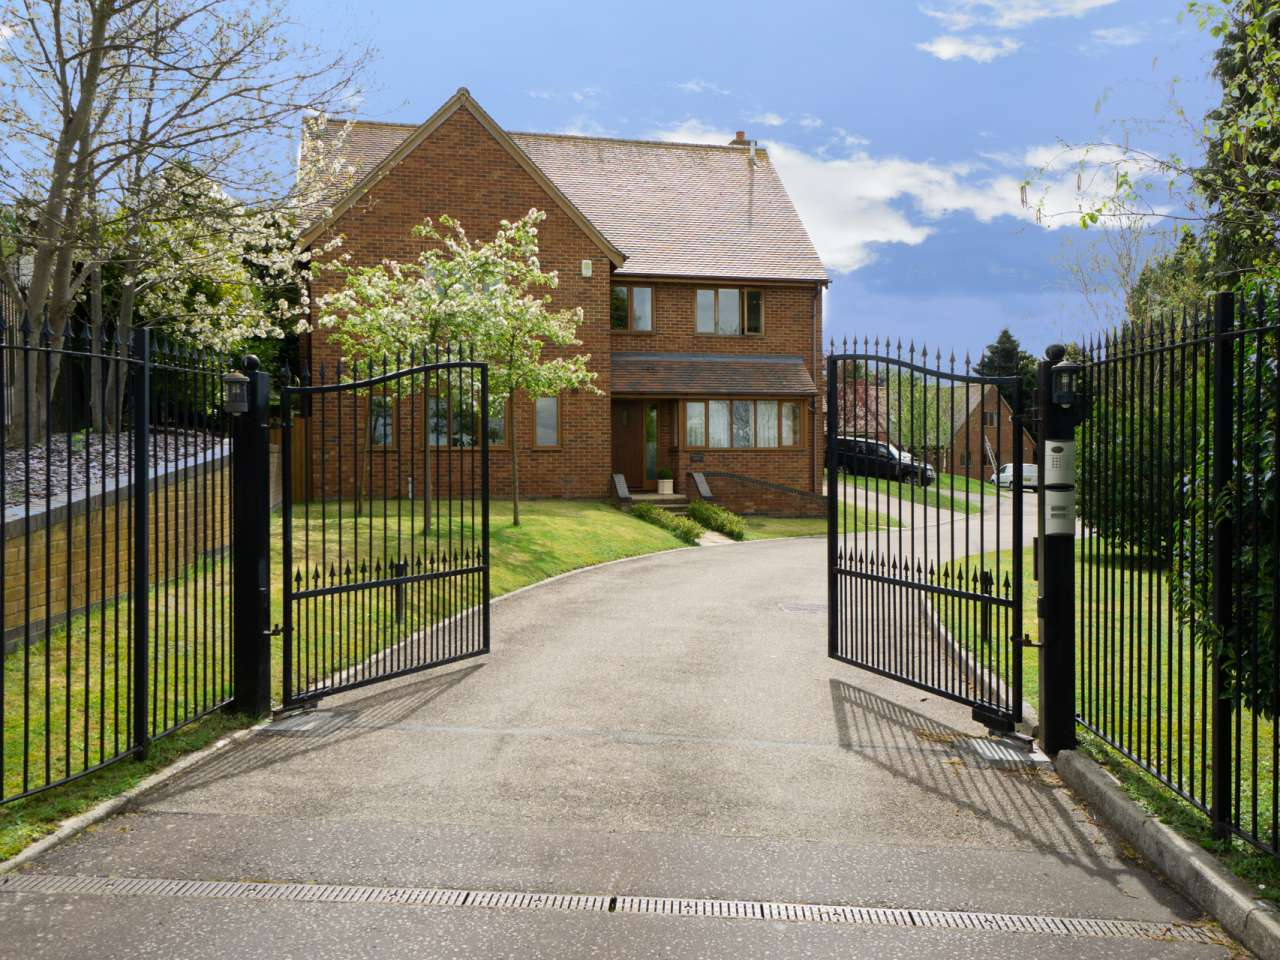 Woodlands House Priory Close, Royston, SG8 7DU